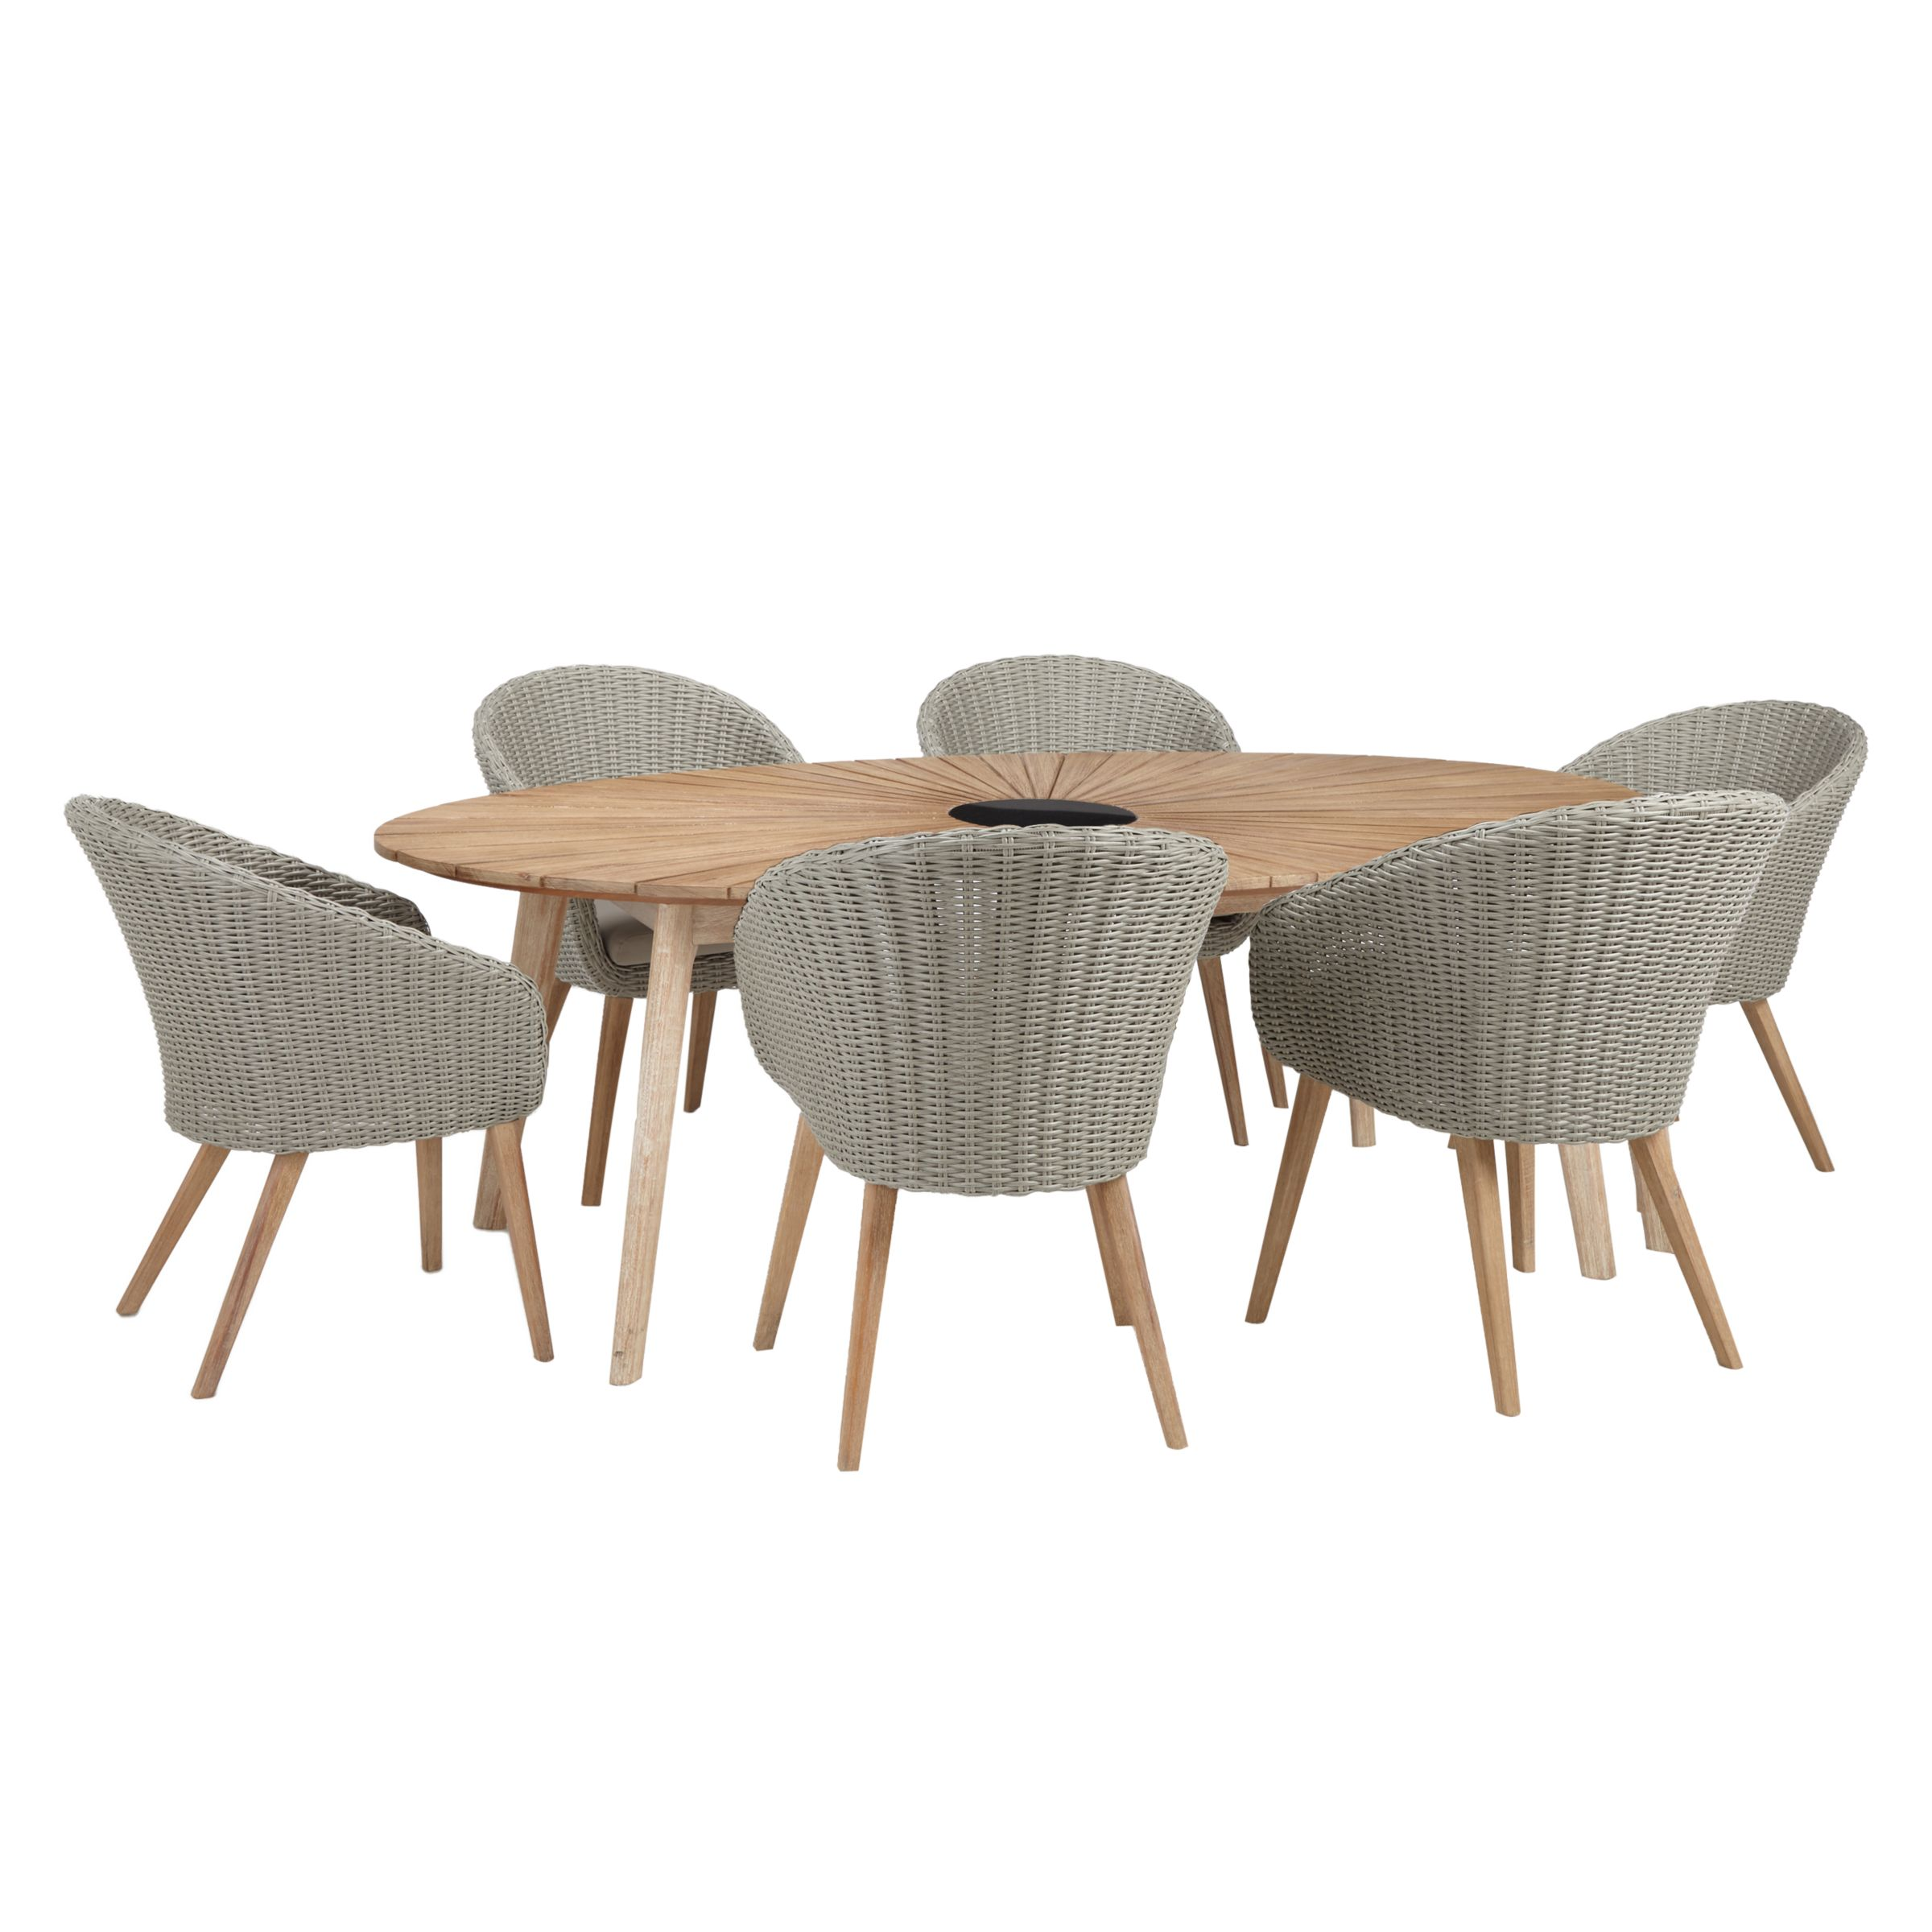 John Lewis Kitchen Furniture Outdoor Garden Table And Chair Sets And Ranges John Lewis